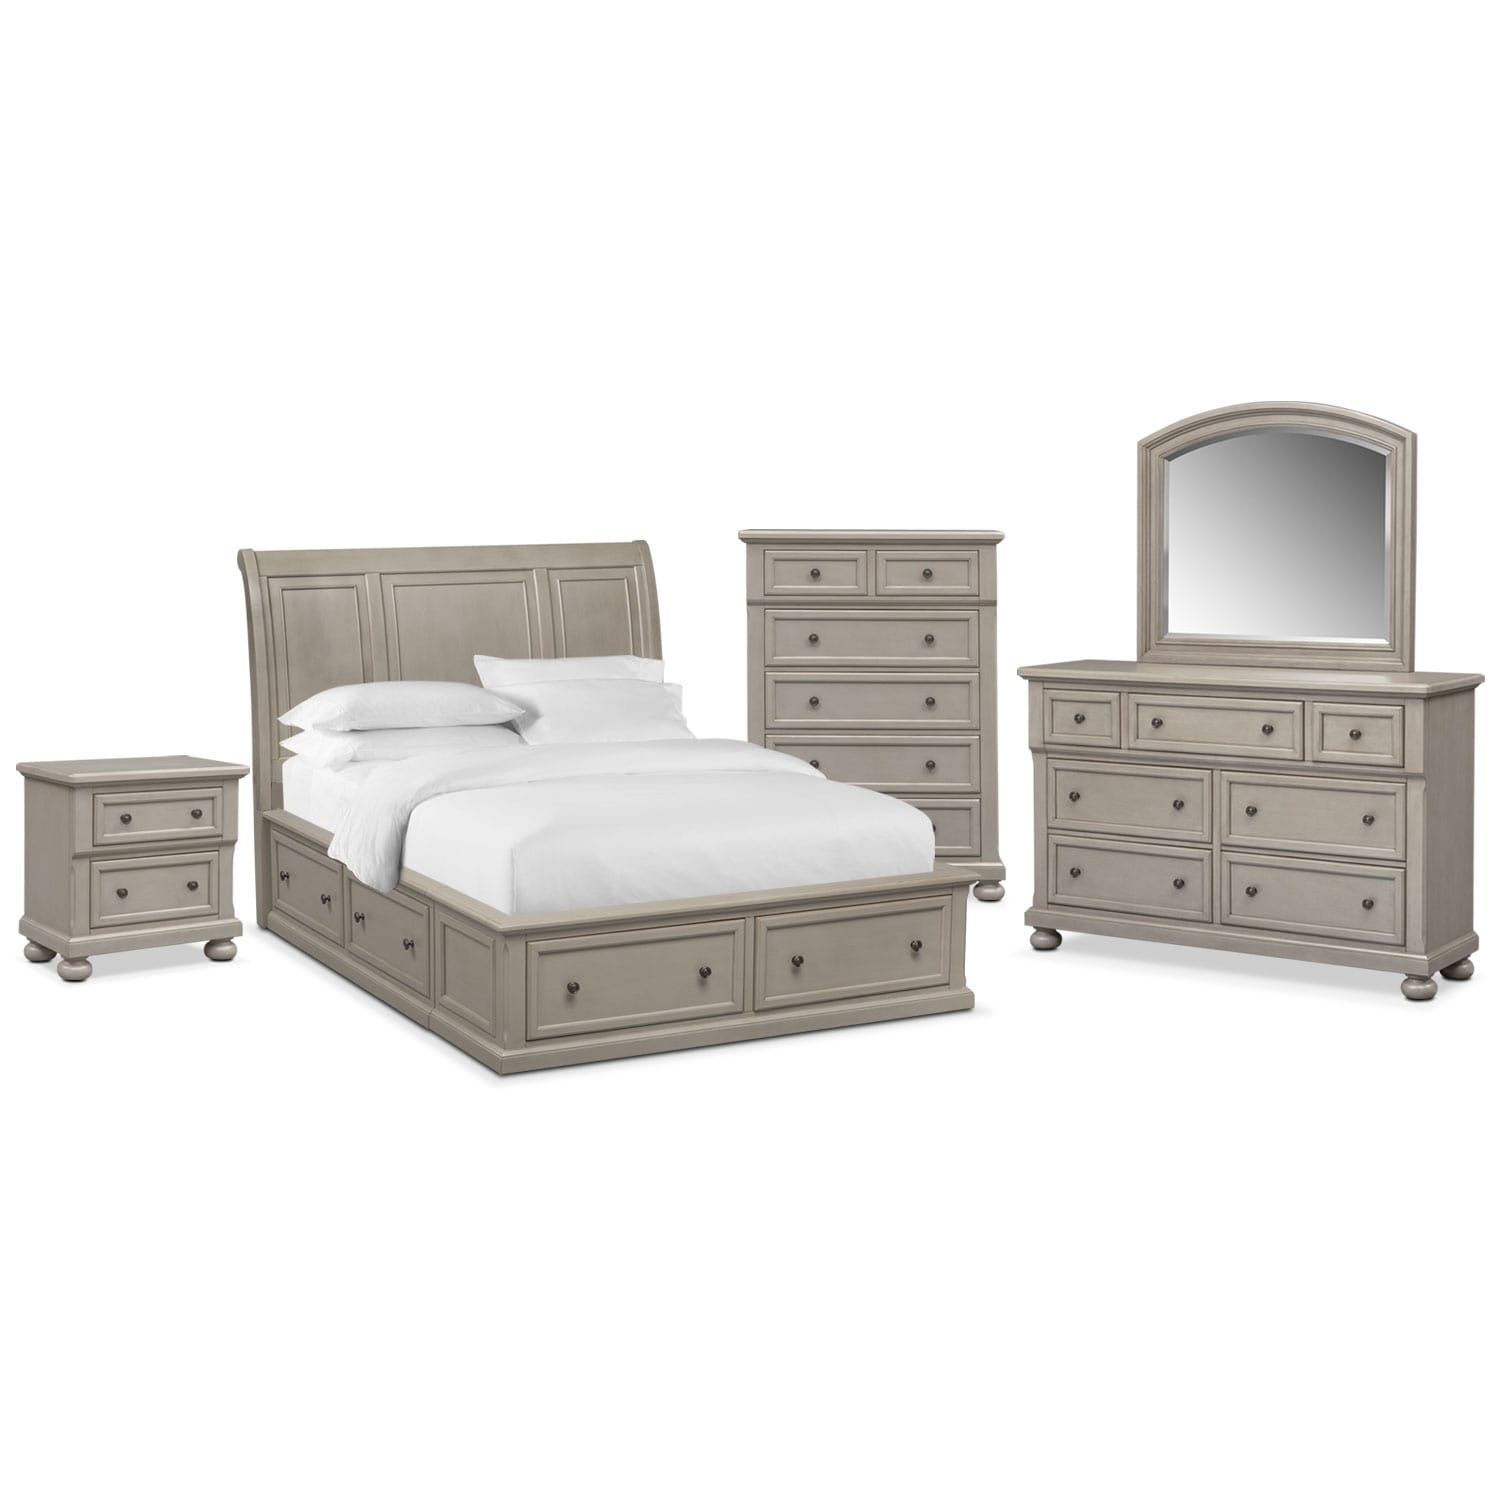 Bedroom Furniture - Hanover King 7-Piece Storage Bedroom Set - Gray